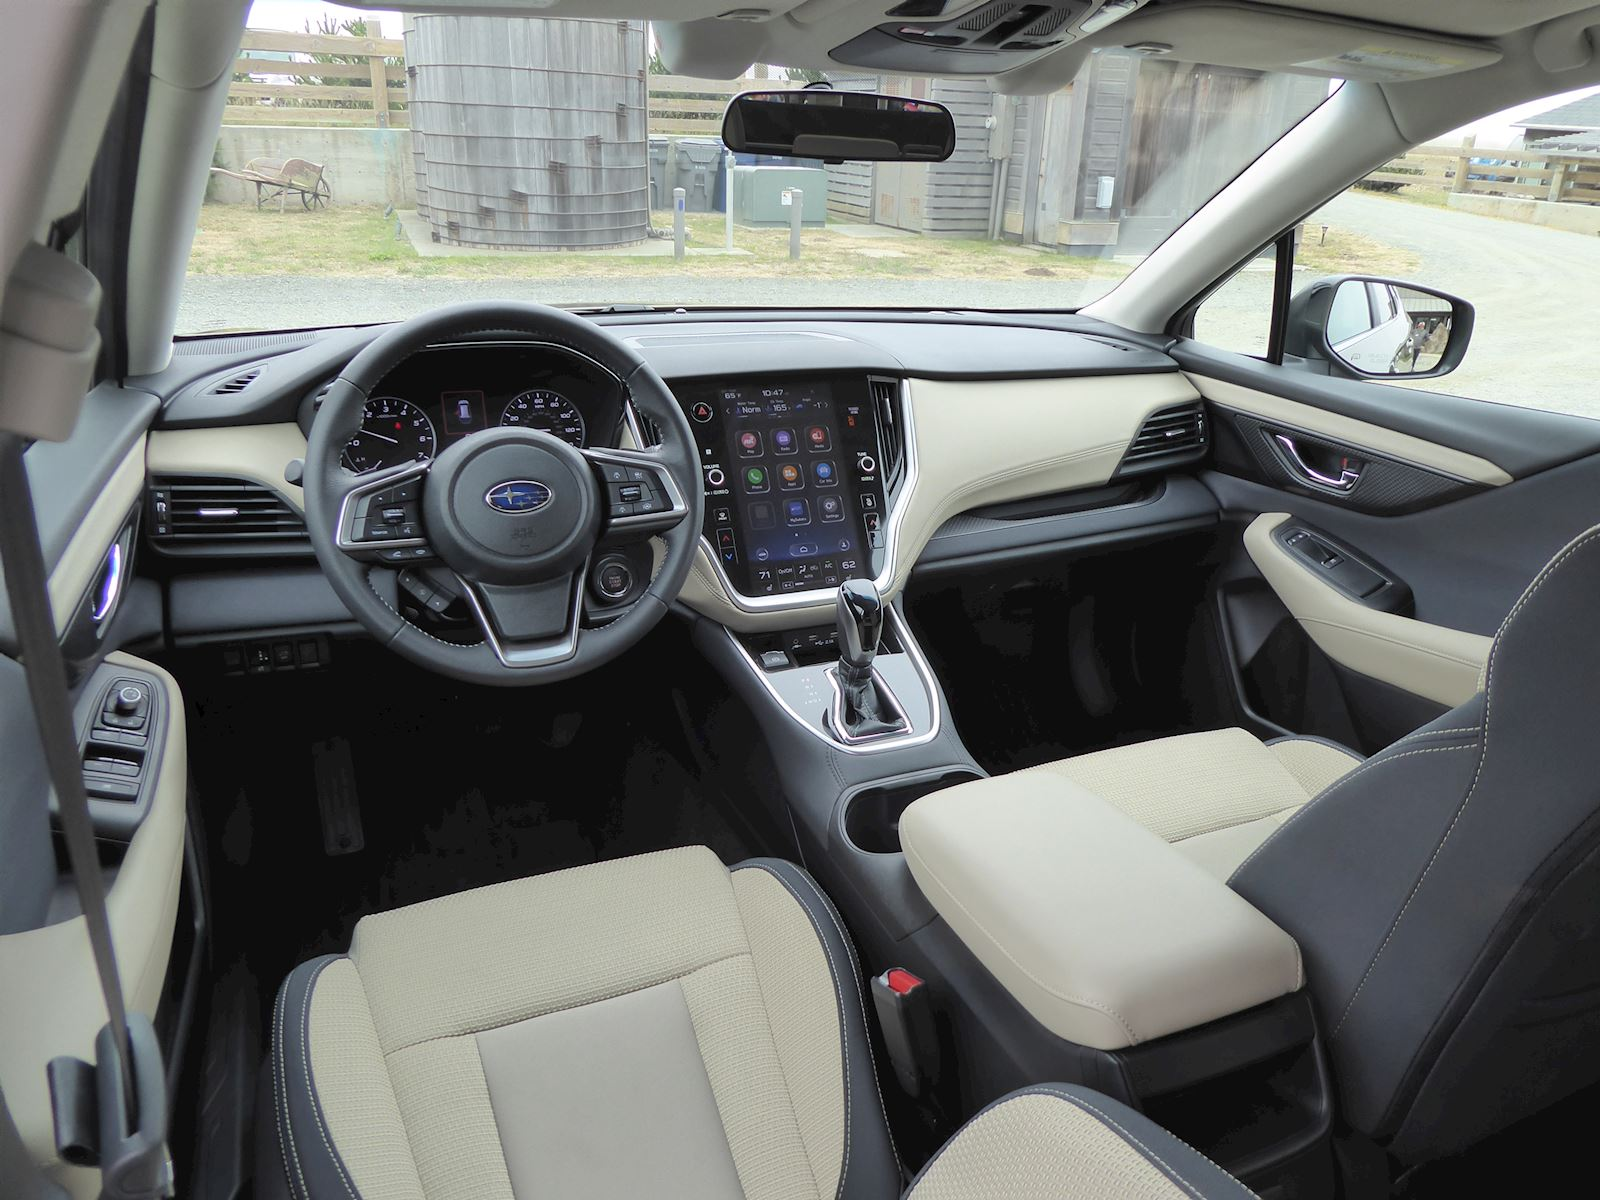 2020 Subaru Outback interior dashboard and front seats photo